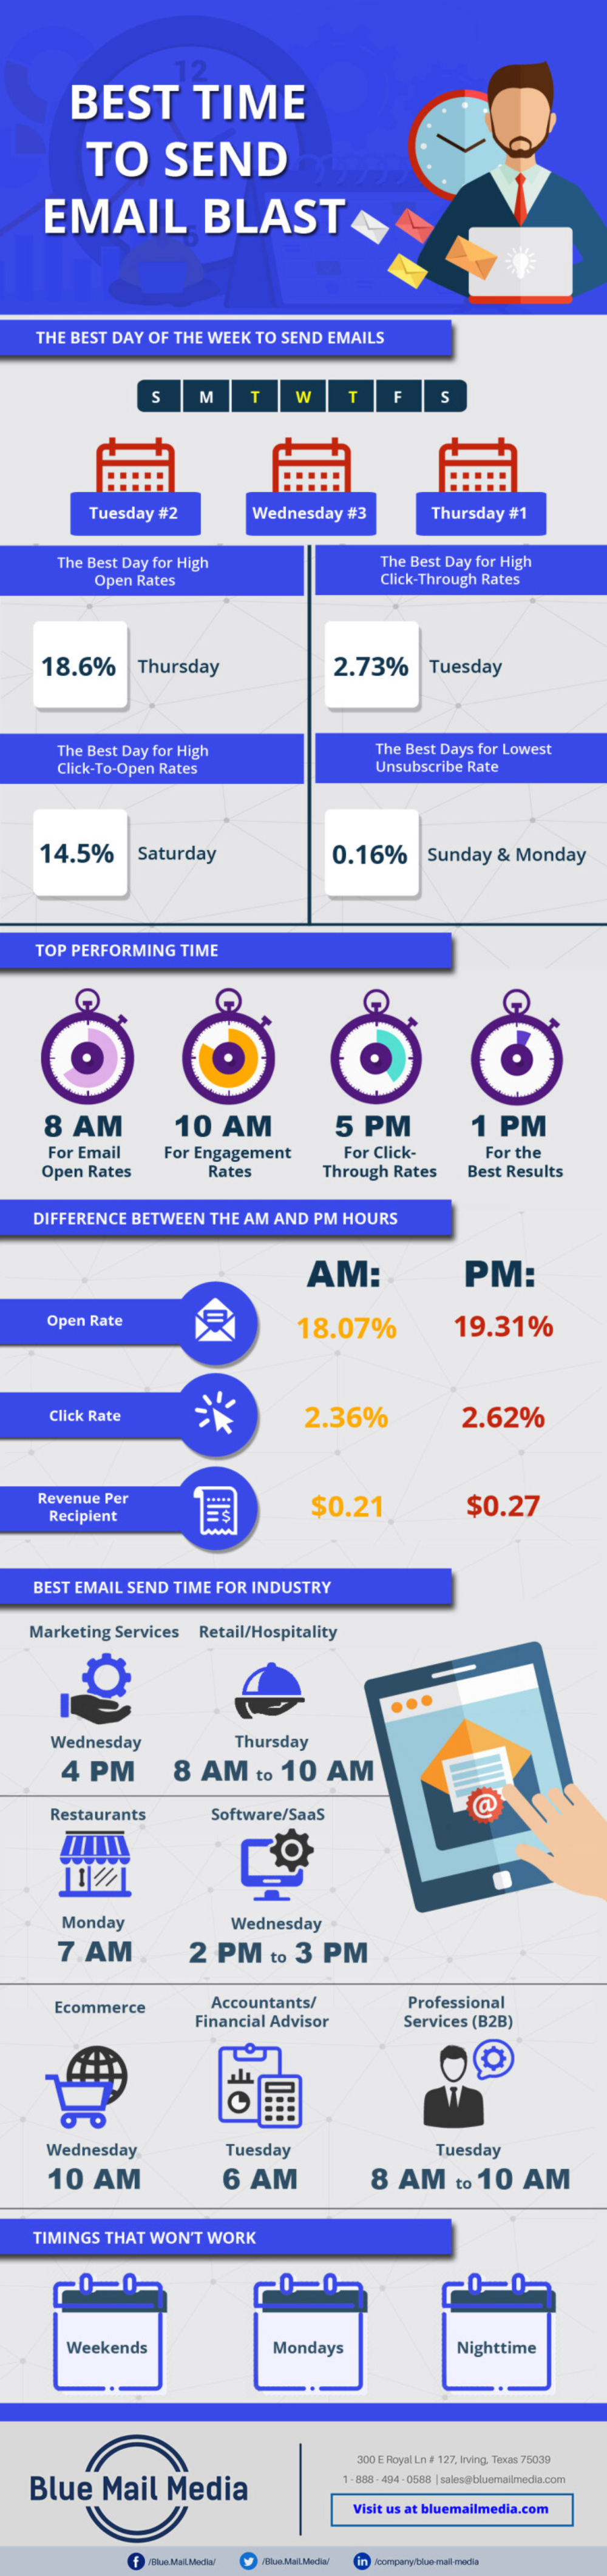 InfoGraphic - Best Time to Send an Email Blast